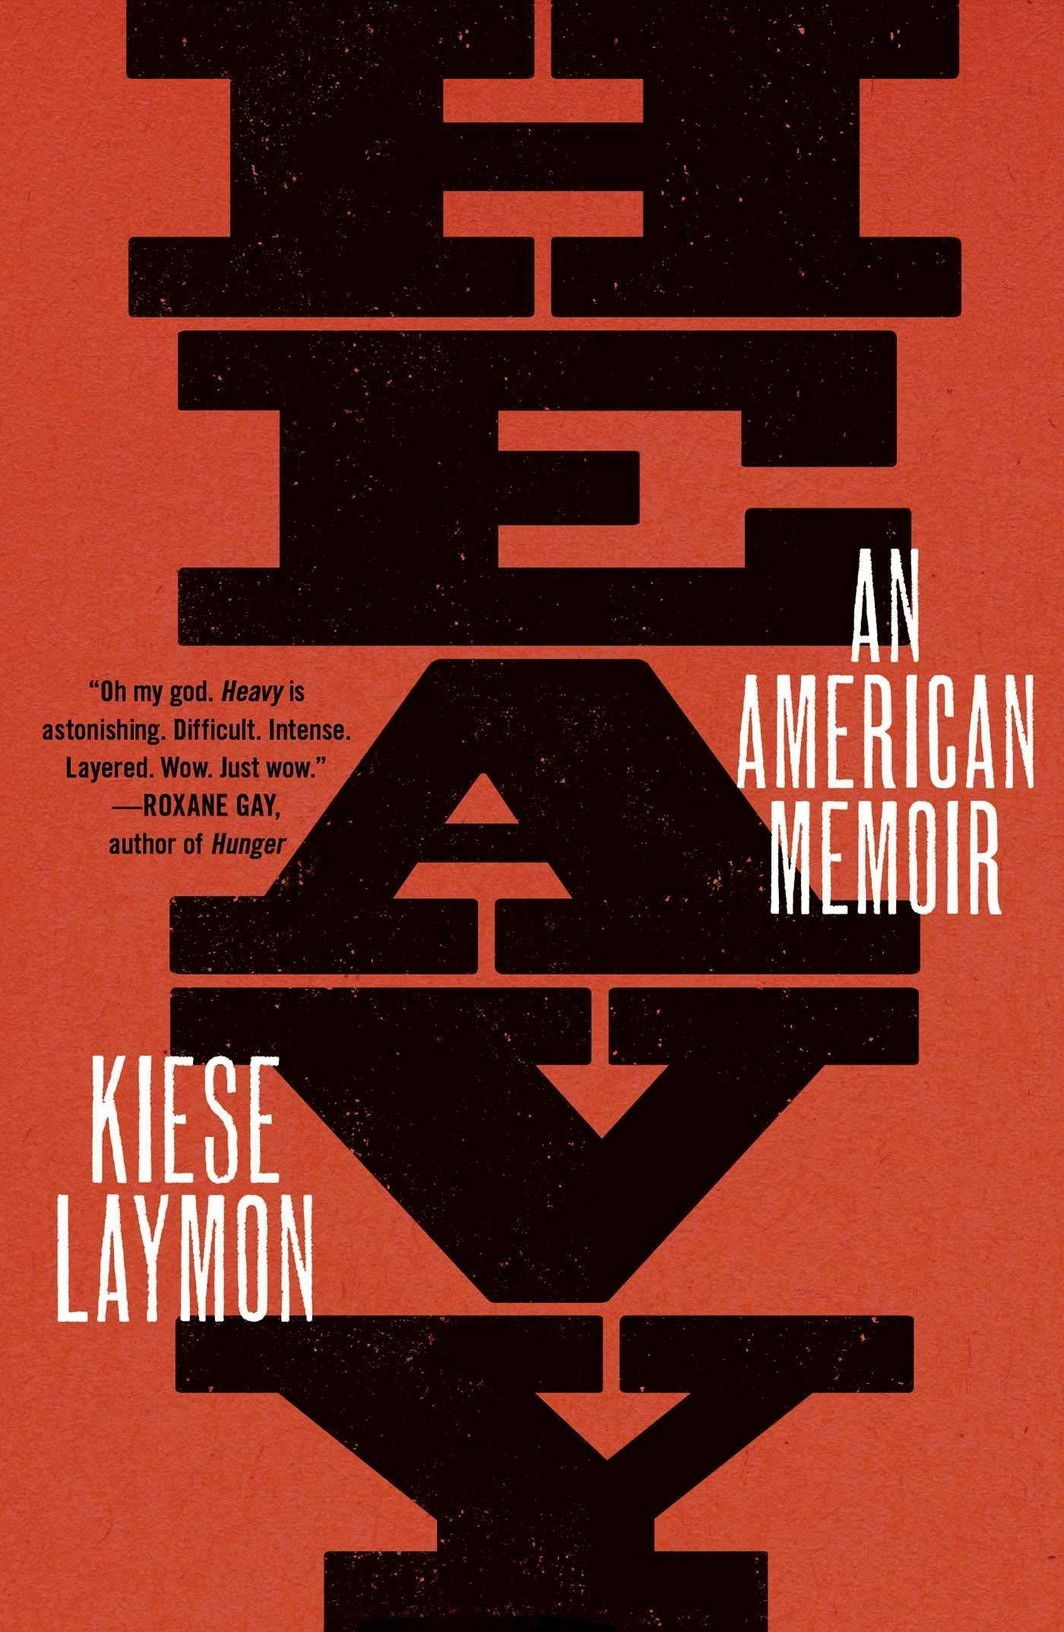 The cover of Heavy: An American Memoir